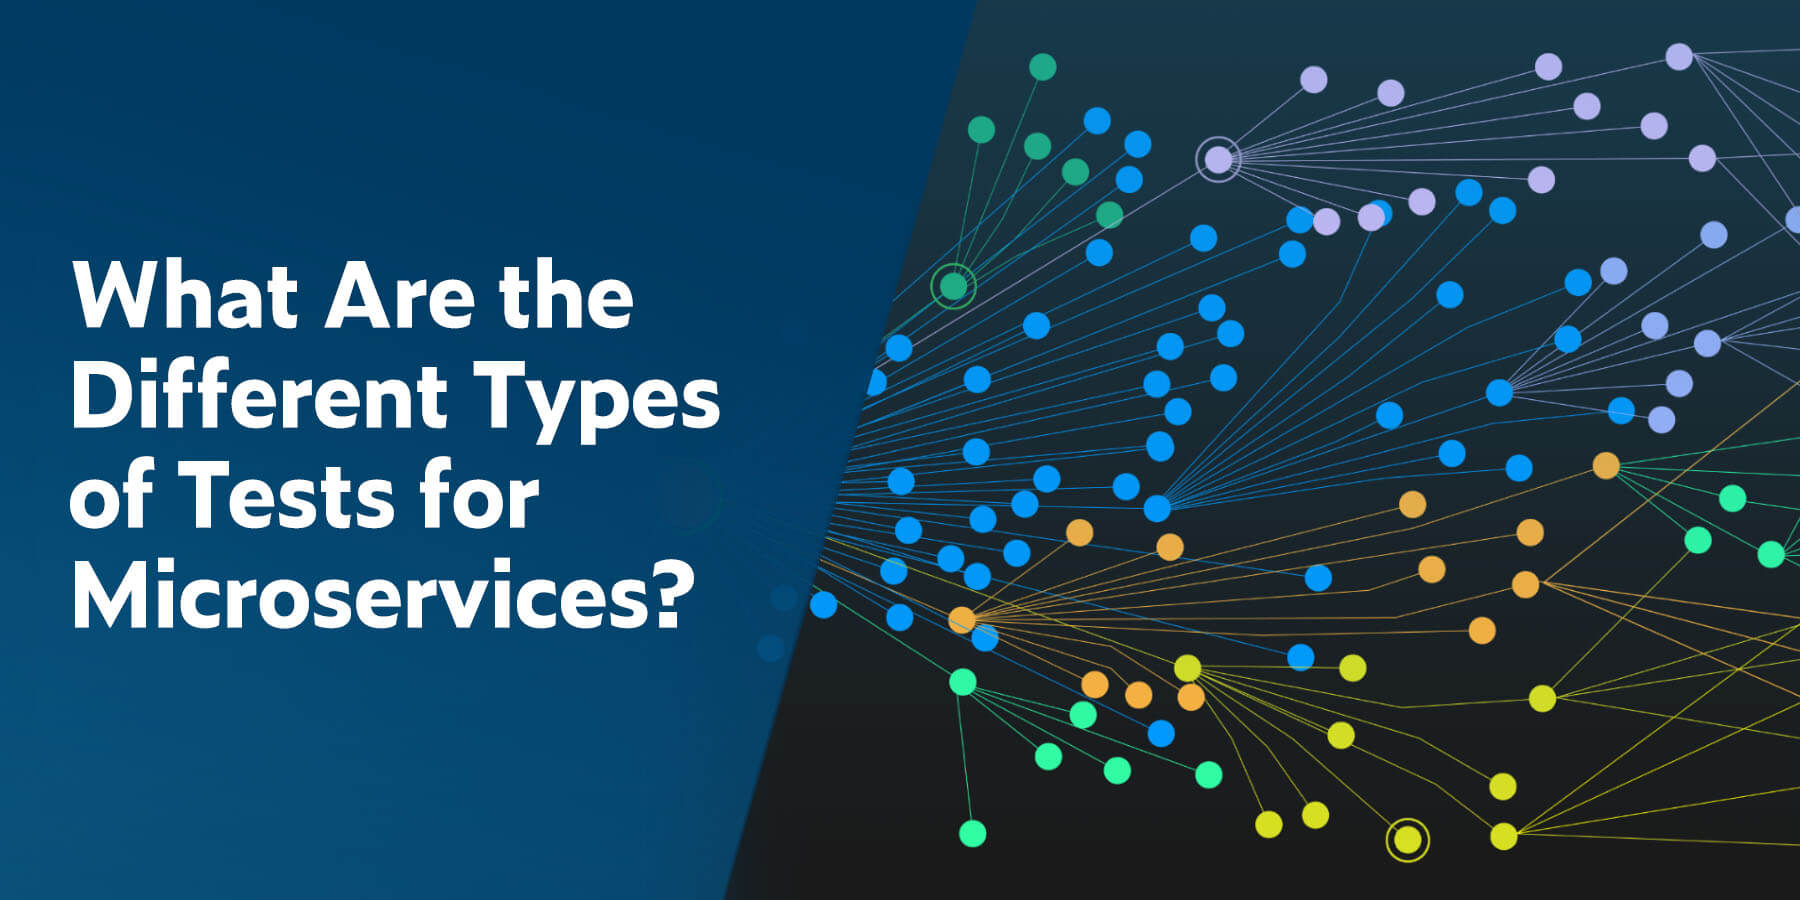 What Are Different Types of Tests for Microservices?